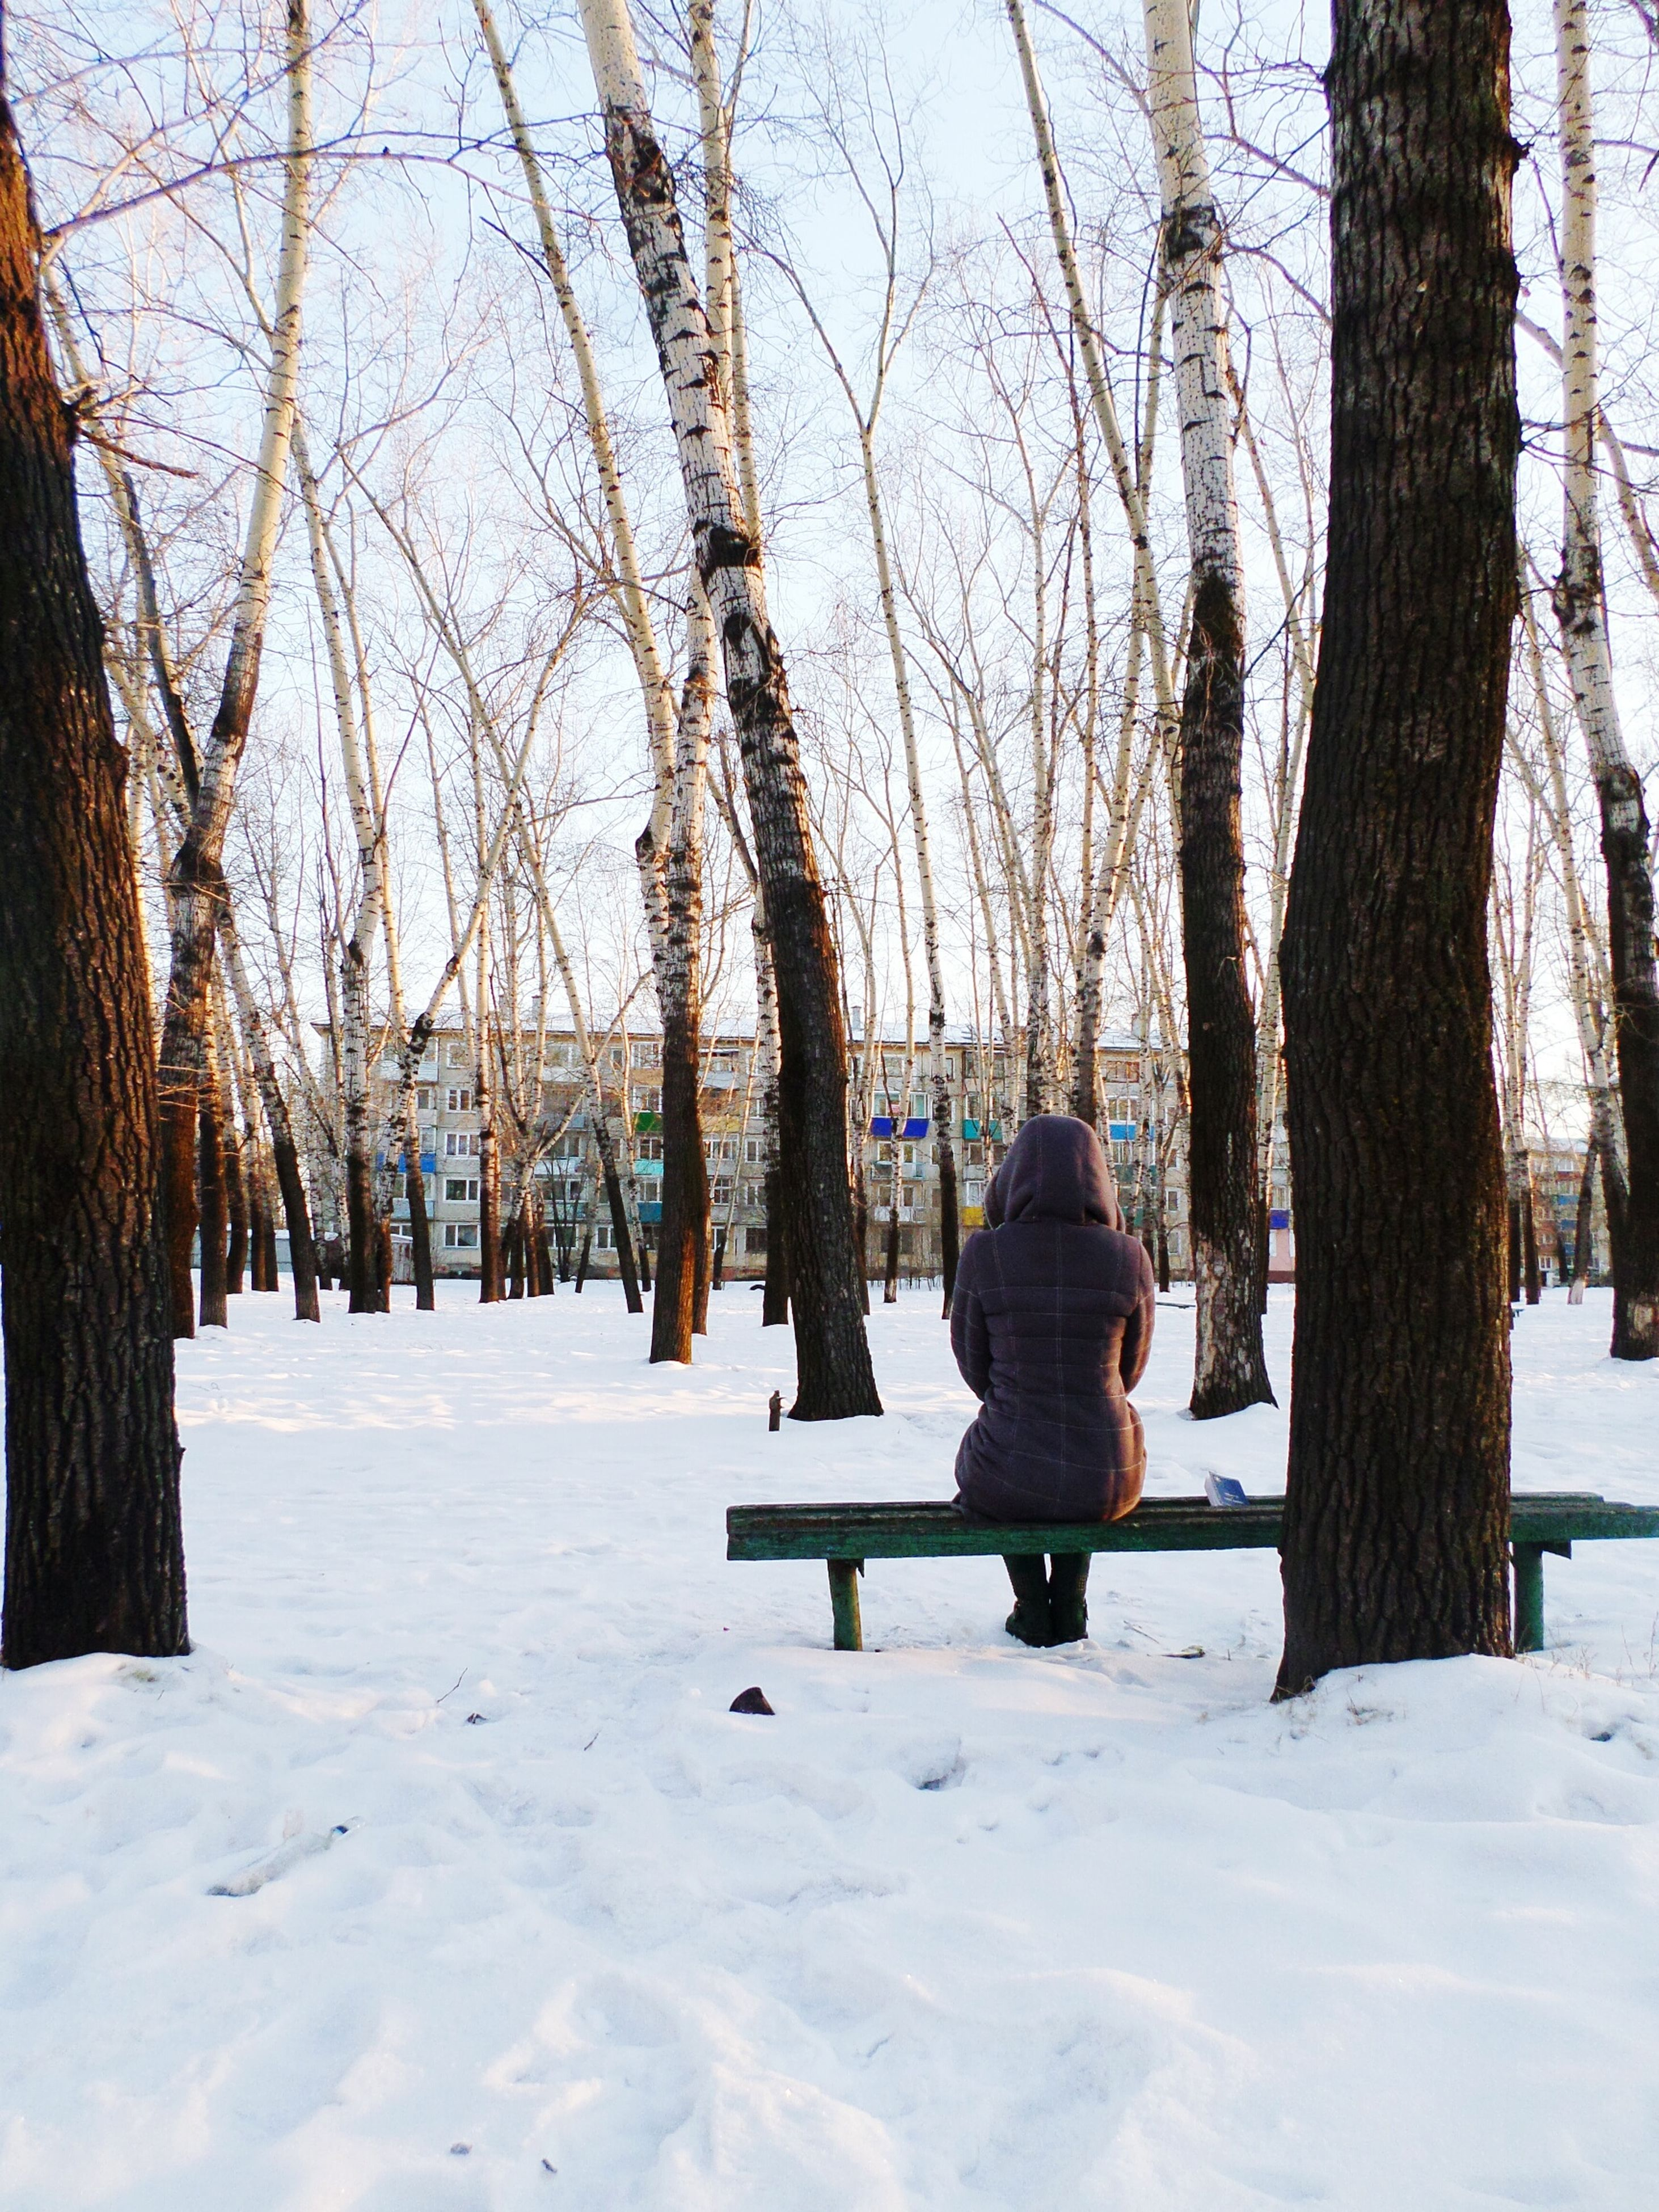 winter, snow, cold temperature, season, tree, weather, lifestyles, leisure activity, tree trunk, rear view, covering, full length, nature, tranquility, landscape, warm clothing, walking